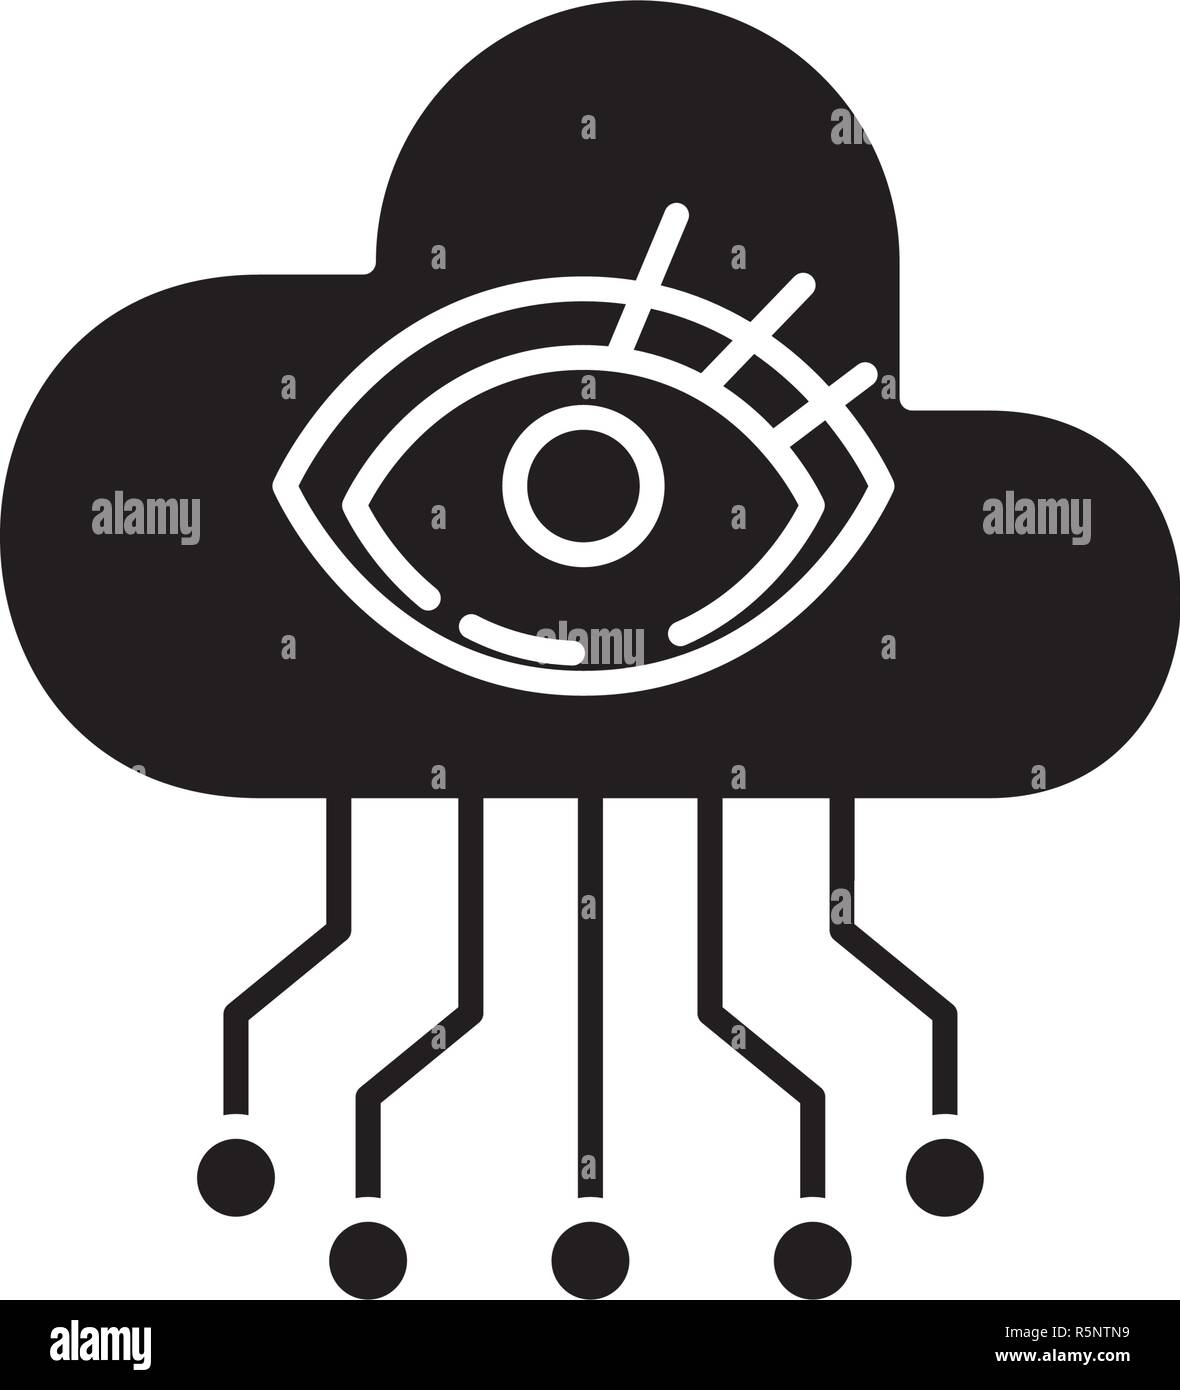 Artificial intelligence visualization black icon, vector sign on isolated background. Artificial intelligence visualization concept symbol, illustration  - Stock Image